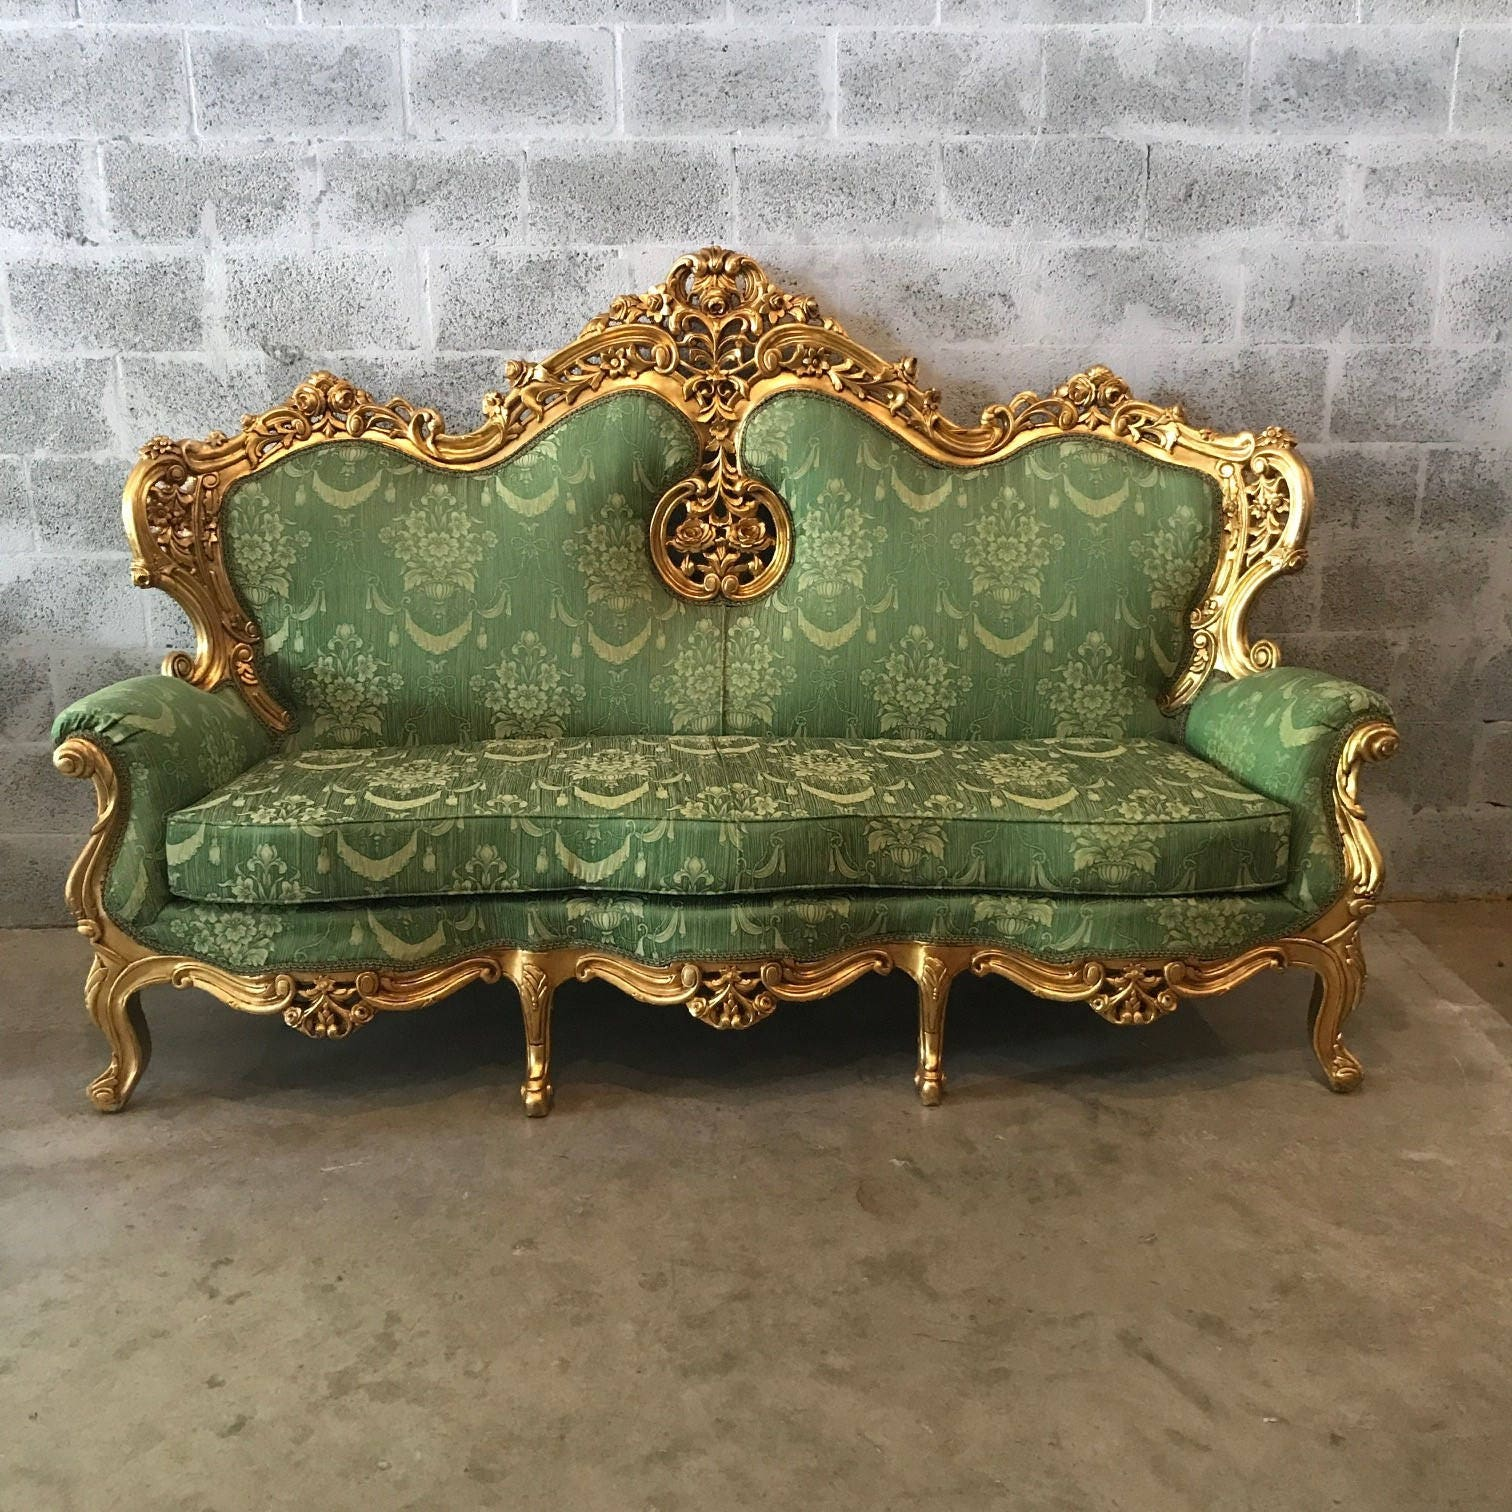 Hold Rococo Throne Chair Antique Furniture Green Settee French